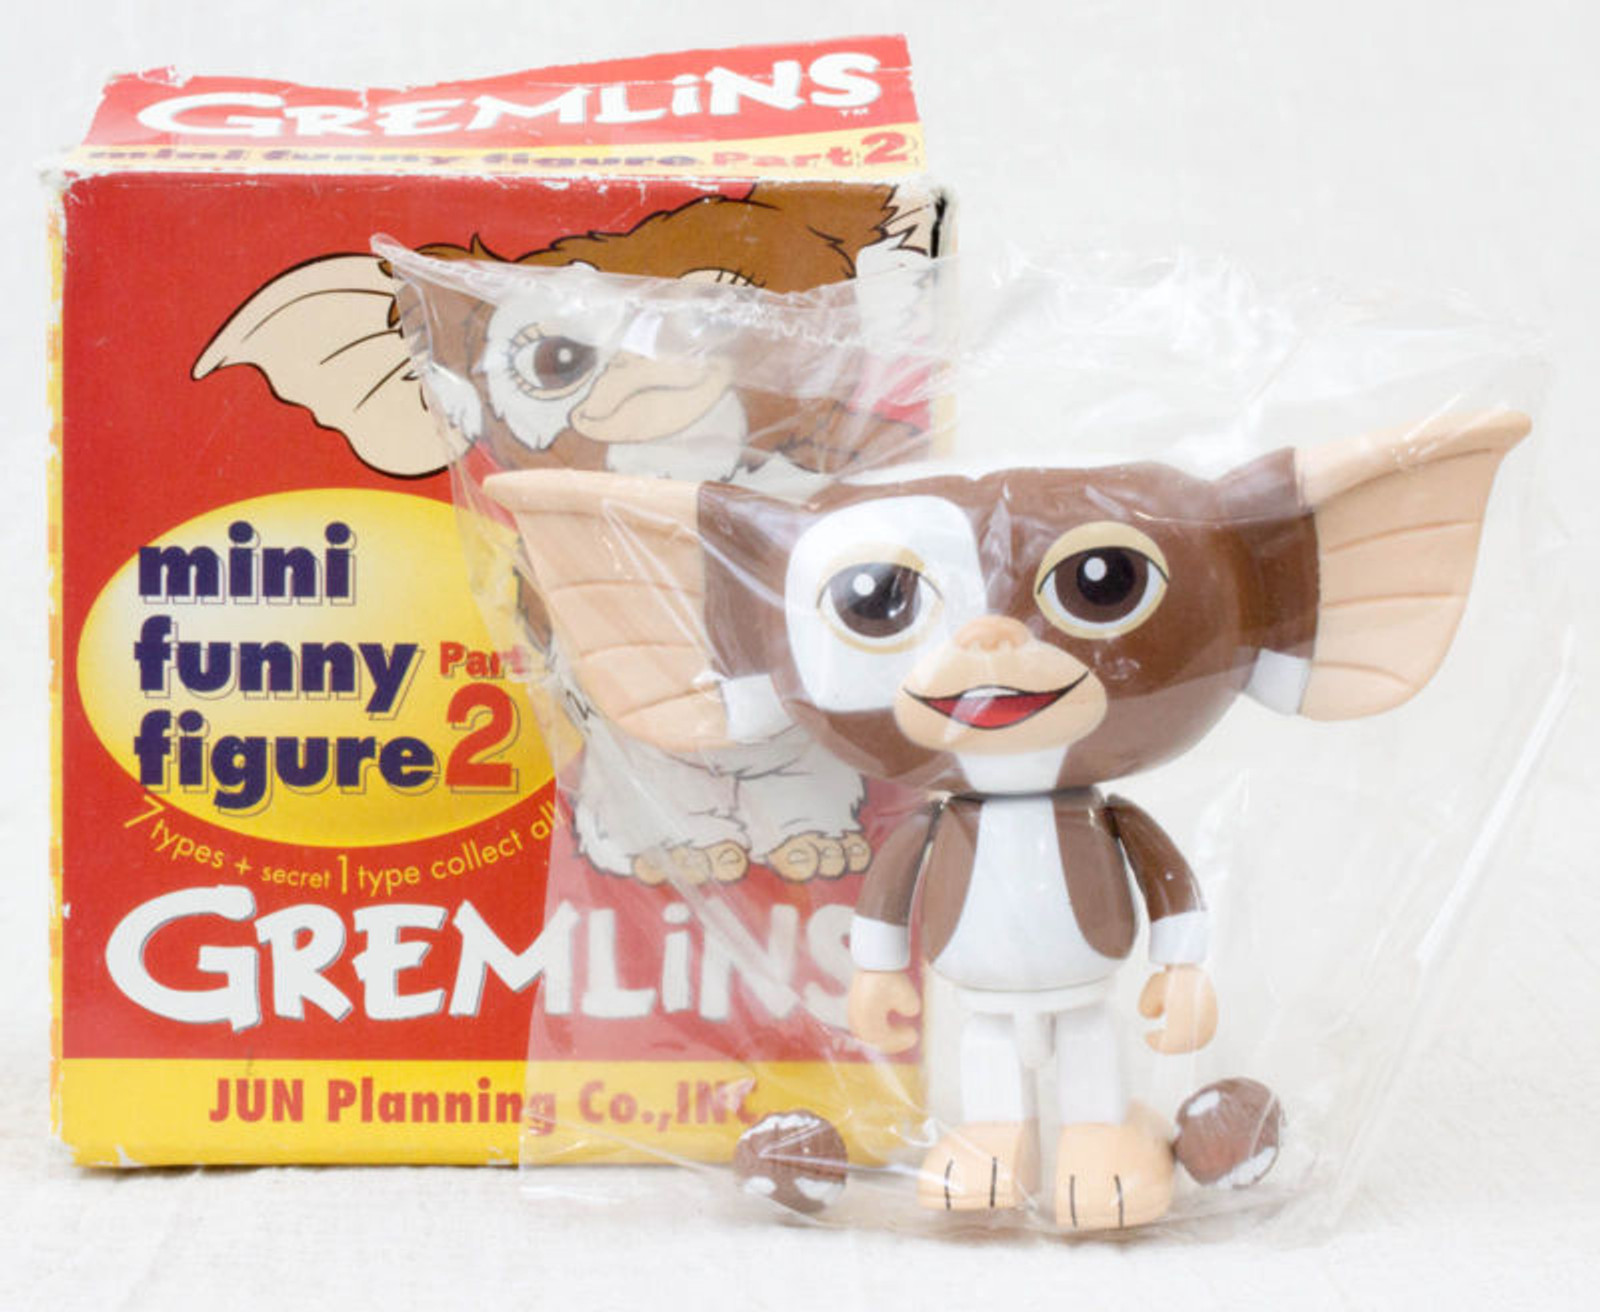 Gremlins 2 Jun Planning Mini Funny Figure Part.2 Gizmo Normal Ver. JAPAN